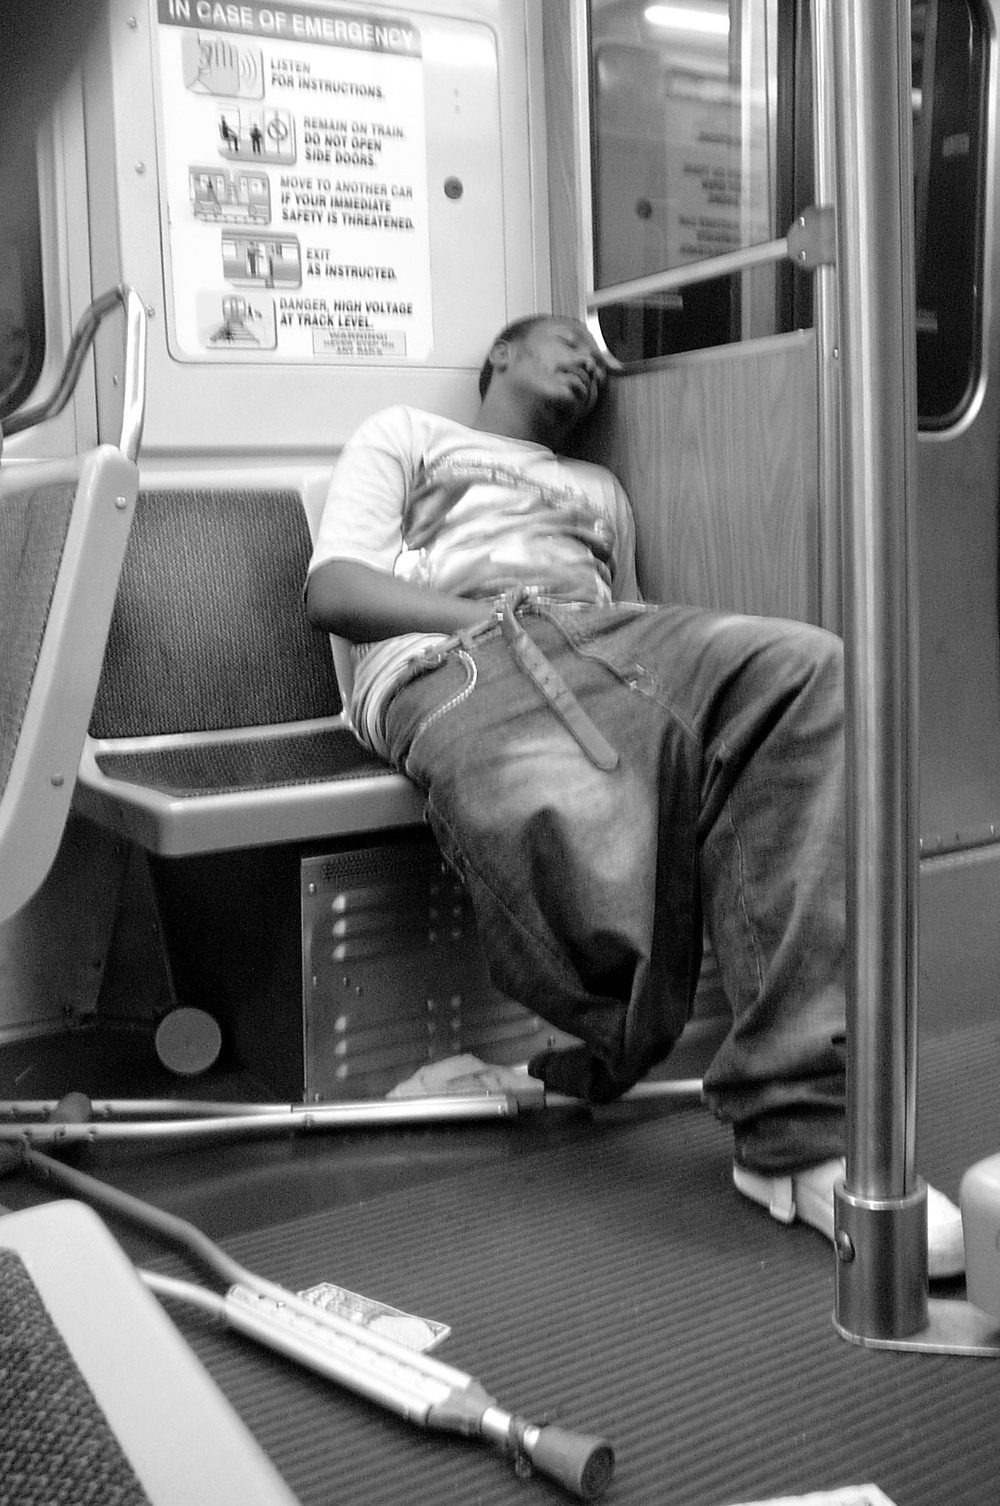 Melina Paez Chicago 2005 Man on Train.jpg